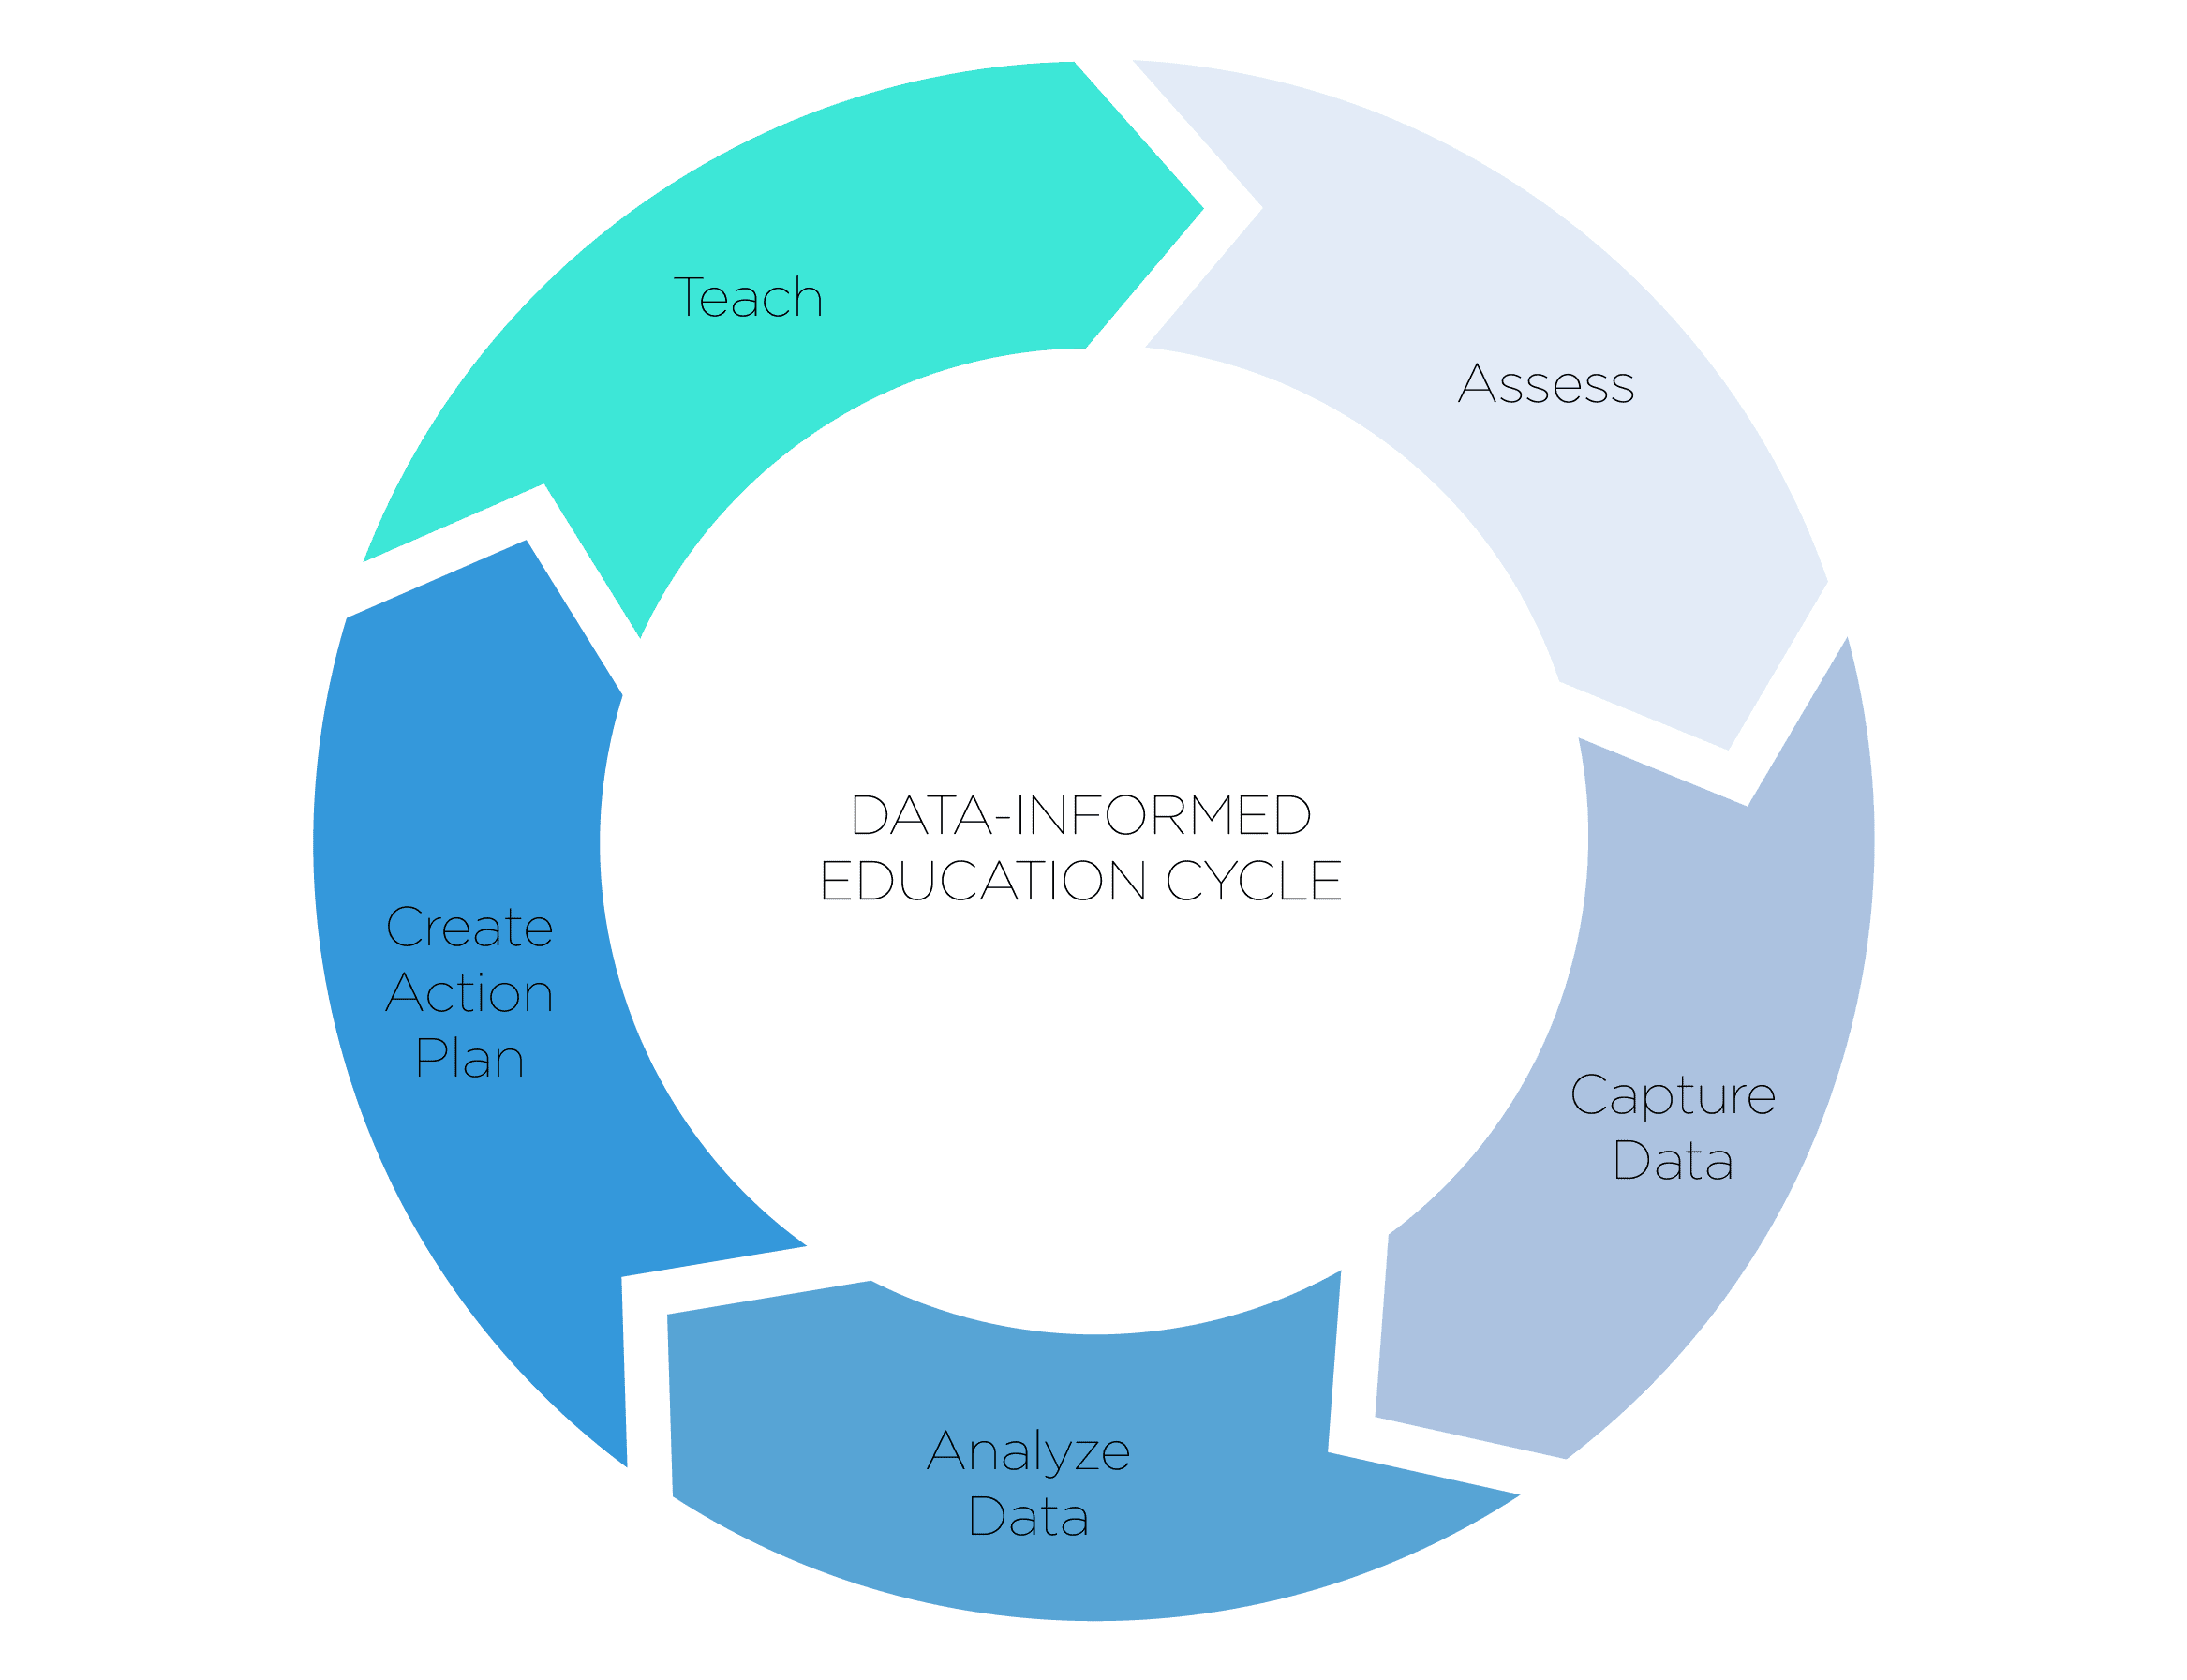 Data-informed education cycle from the Hexter Data Analysis Information